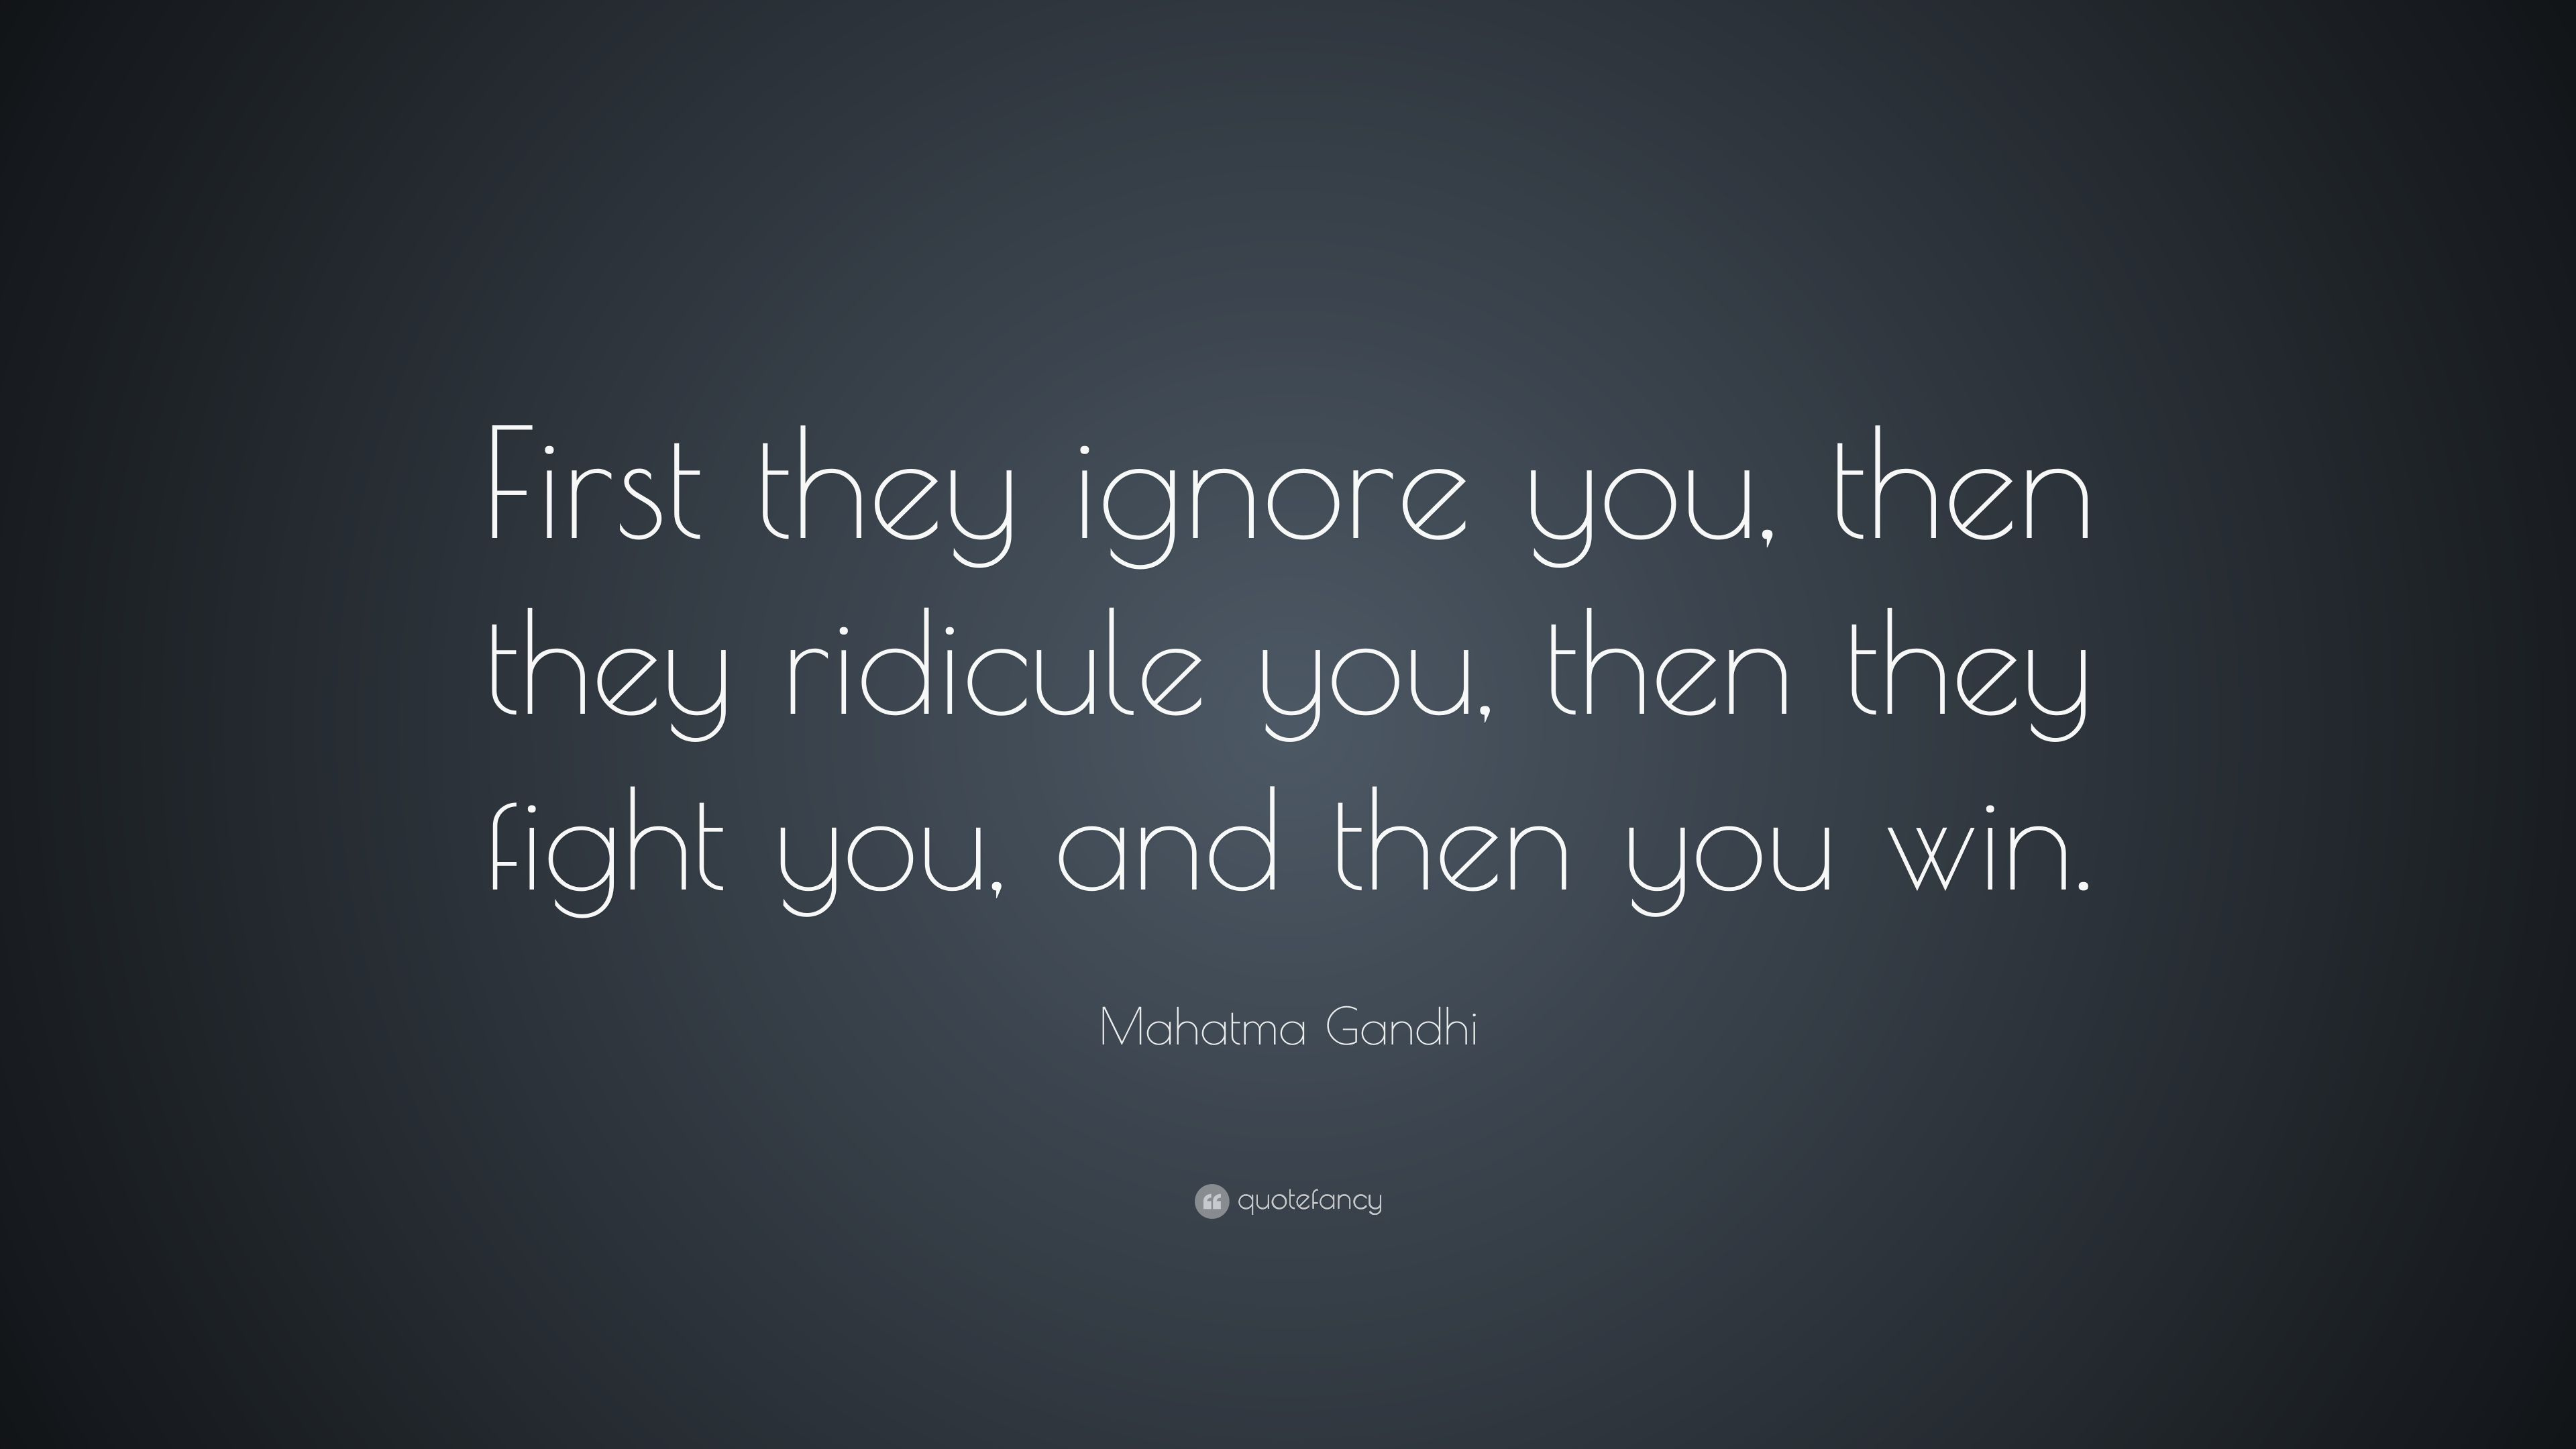 Mahatma Gandhi Quote First They Ignore You Then They Ridicule You Then They Fi Inspiring Quotes About Life Best Inspirational Quotes Top Quotes Inspiration